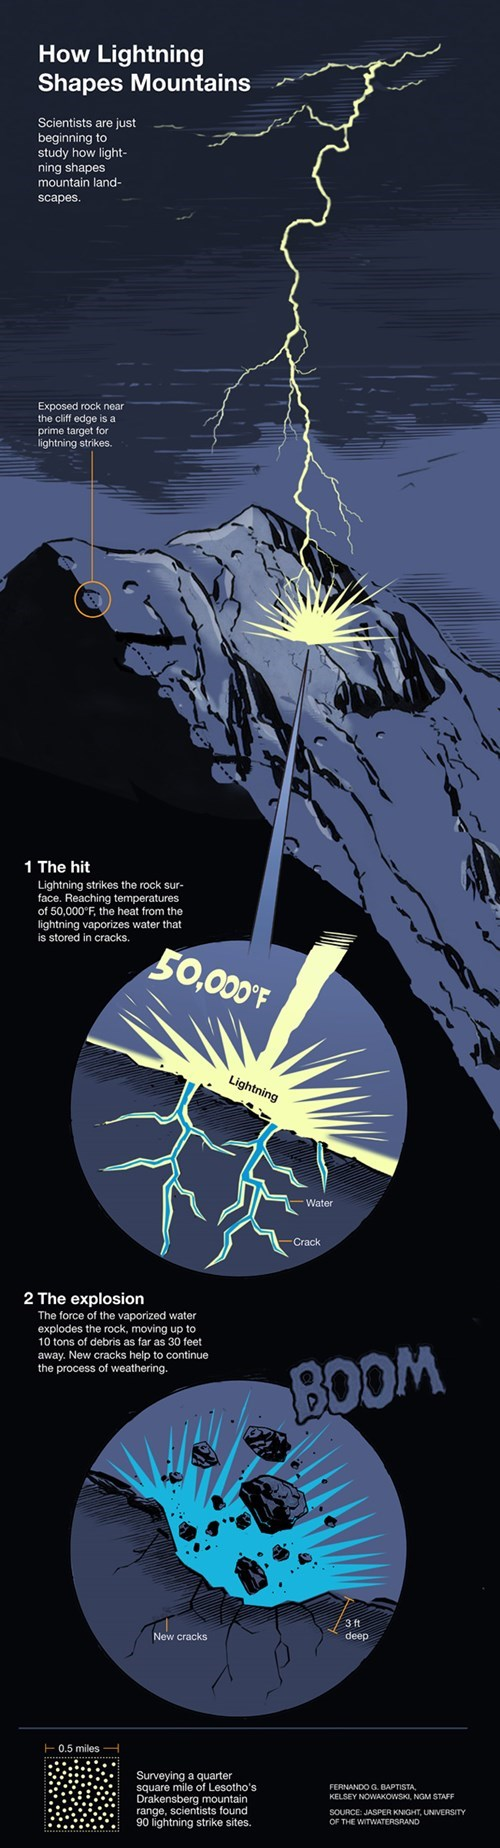 mountains,geology,explosions,science,lightning